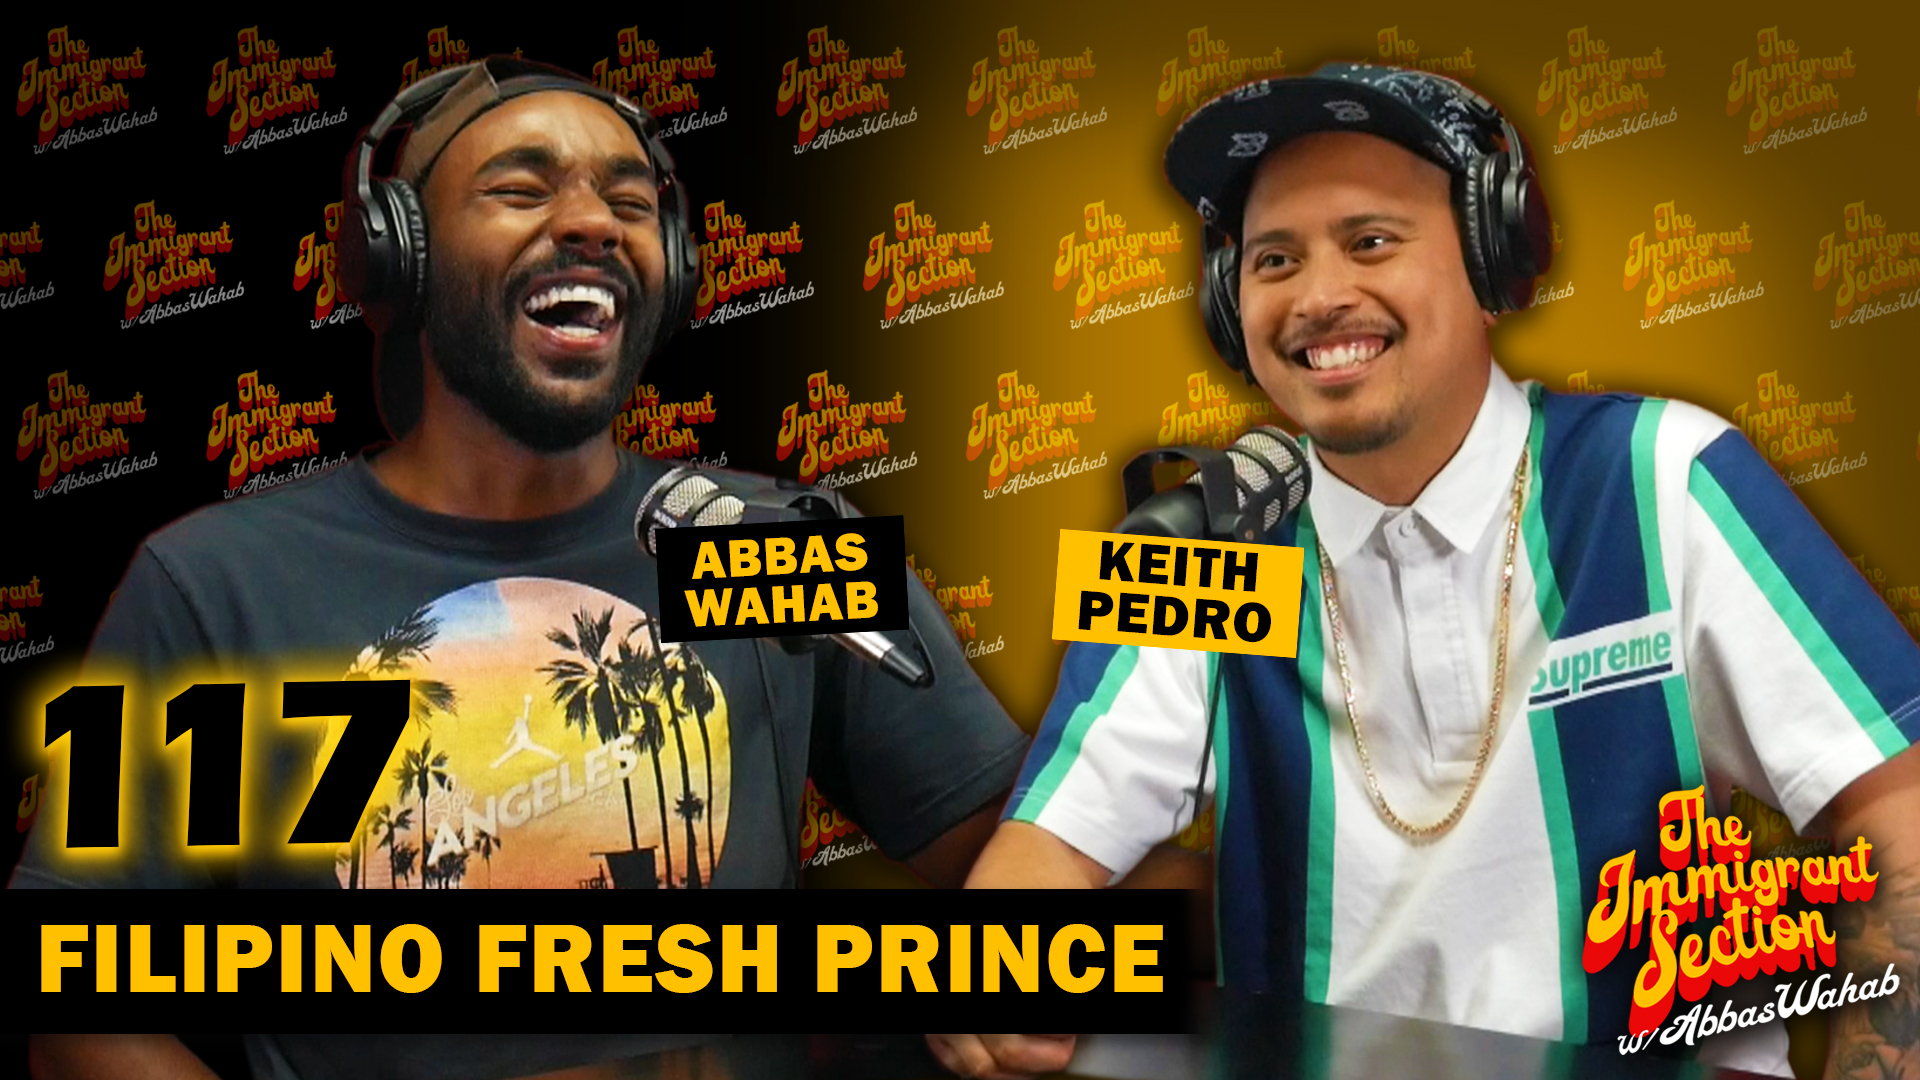 Filipino Fresh Prince | The Immigrant Section with Abbas Wahab